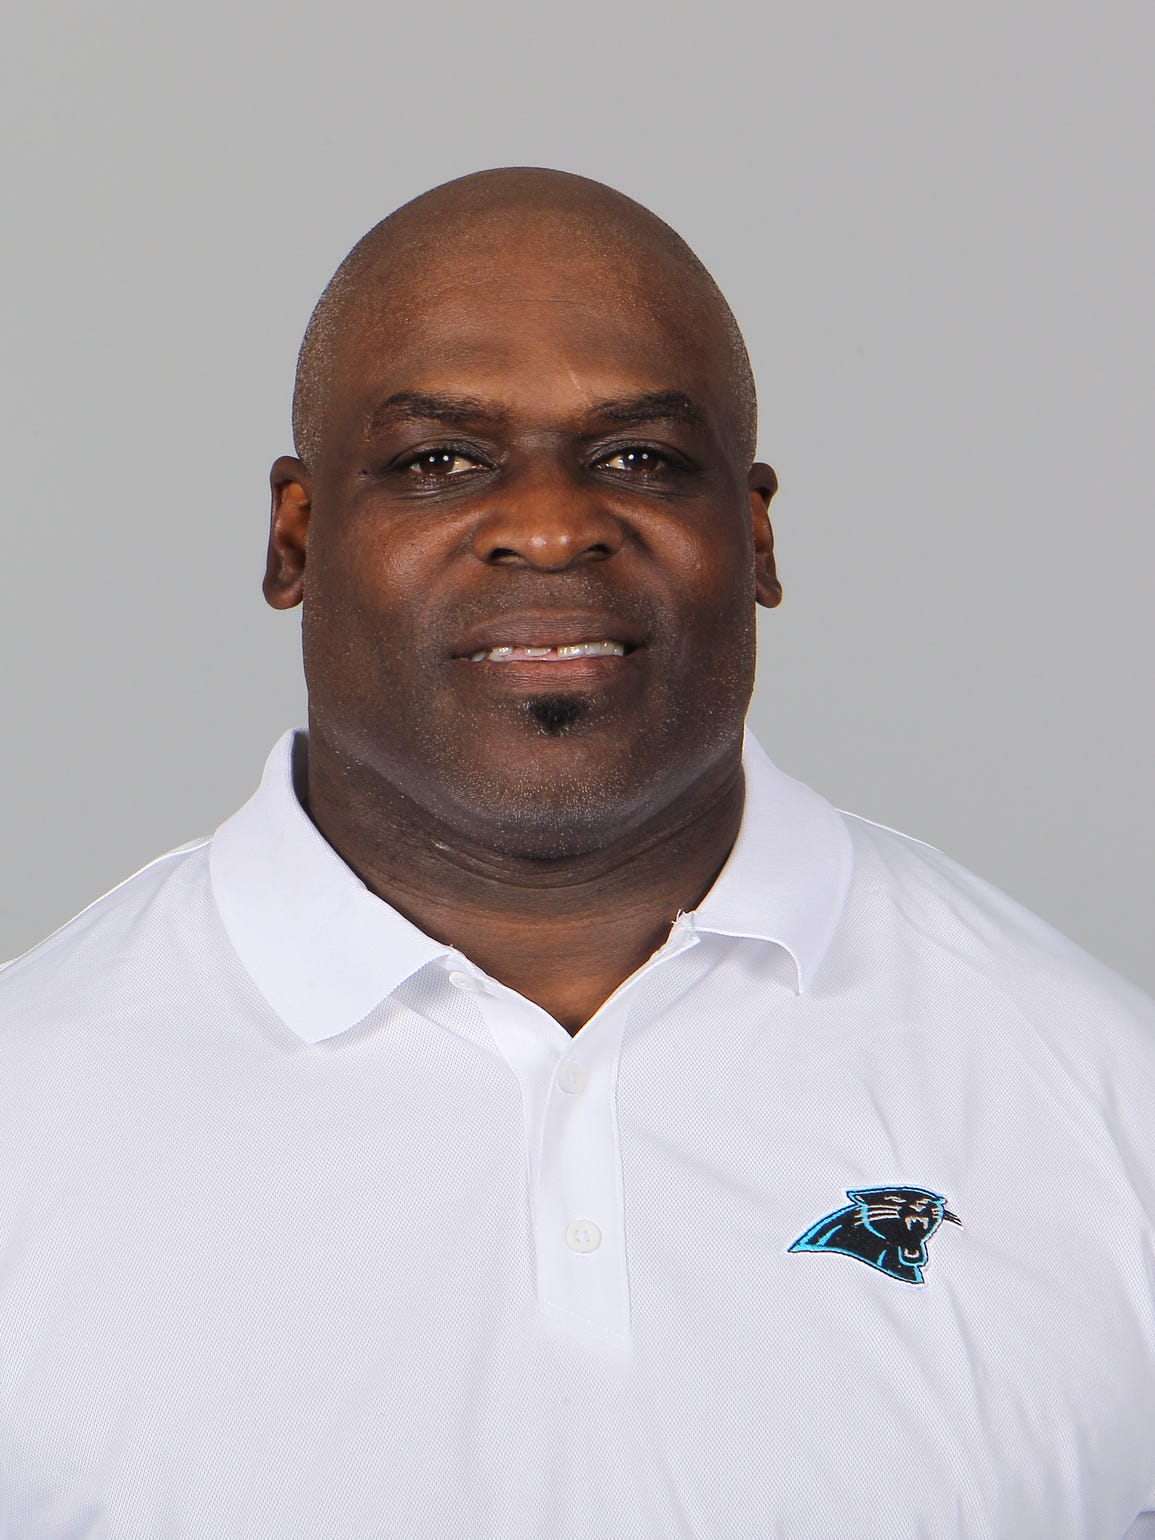 Richard Rodgers Sr. is a defensive assistant with the